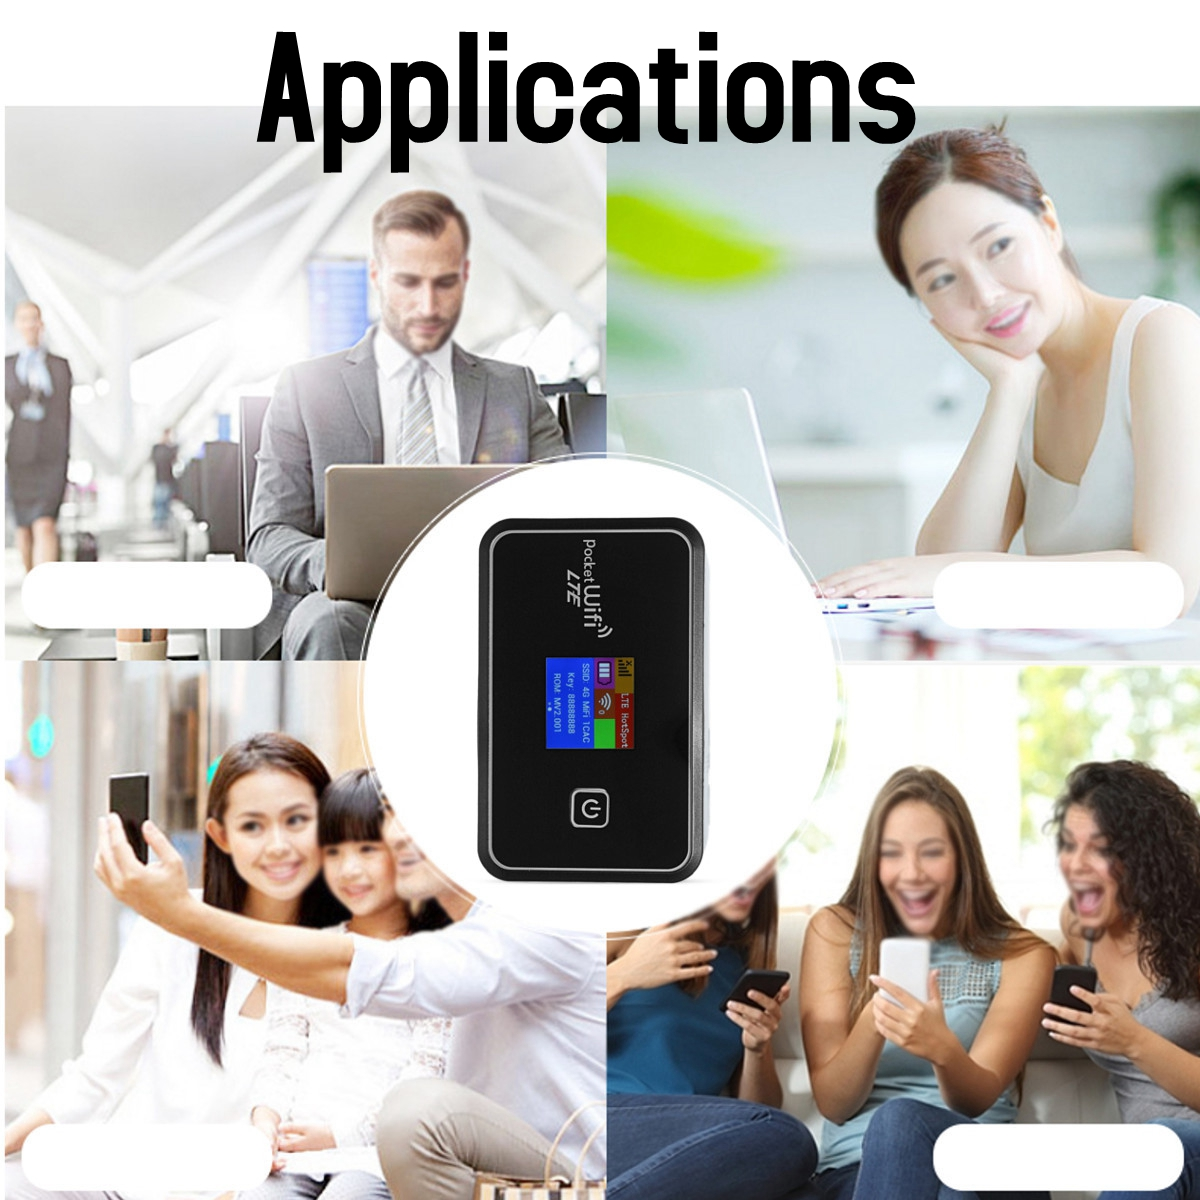 6 In 1 Portable 4G Mobile WiFi Module MIFI Wireless Pocket Hotspot Router Broadband LCD